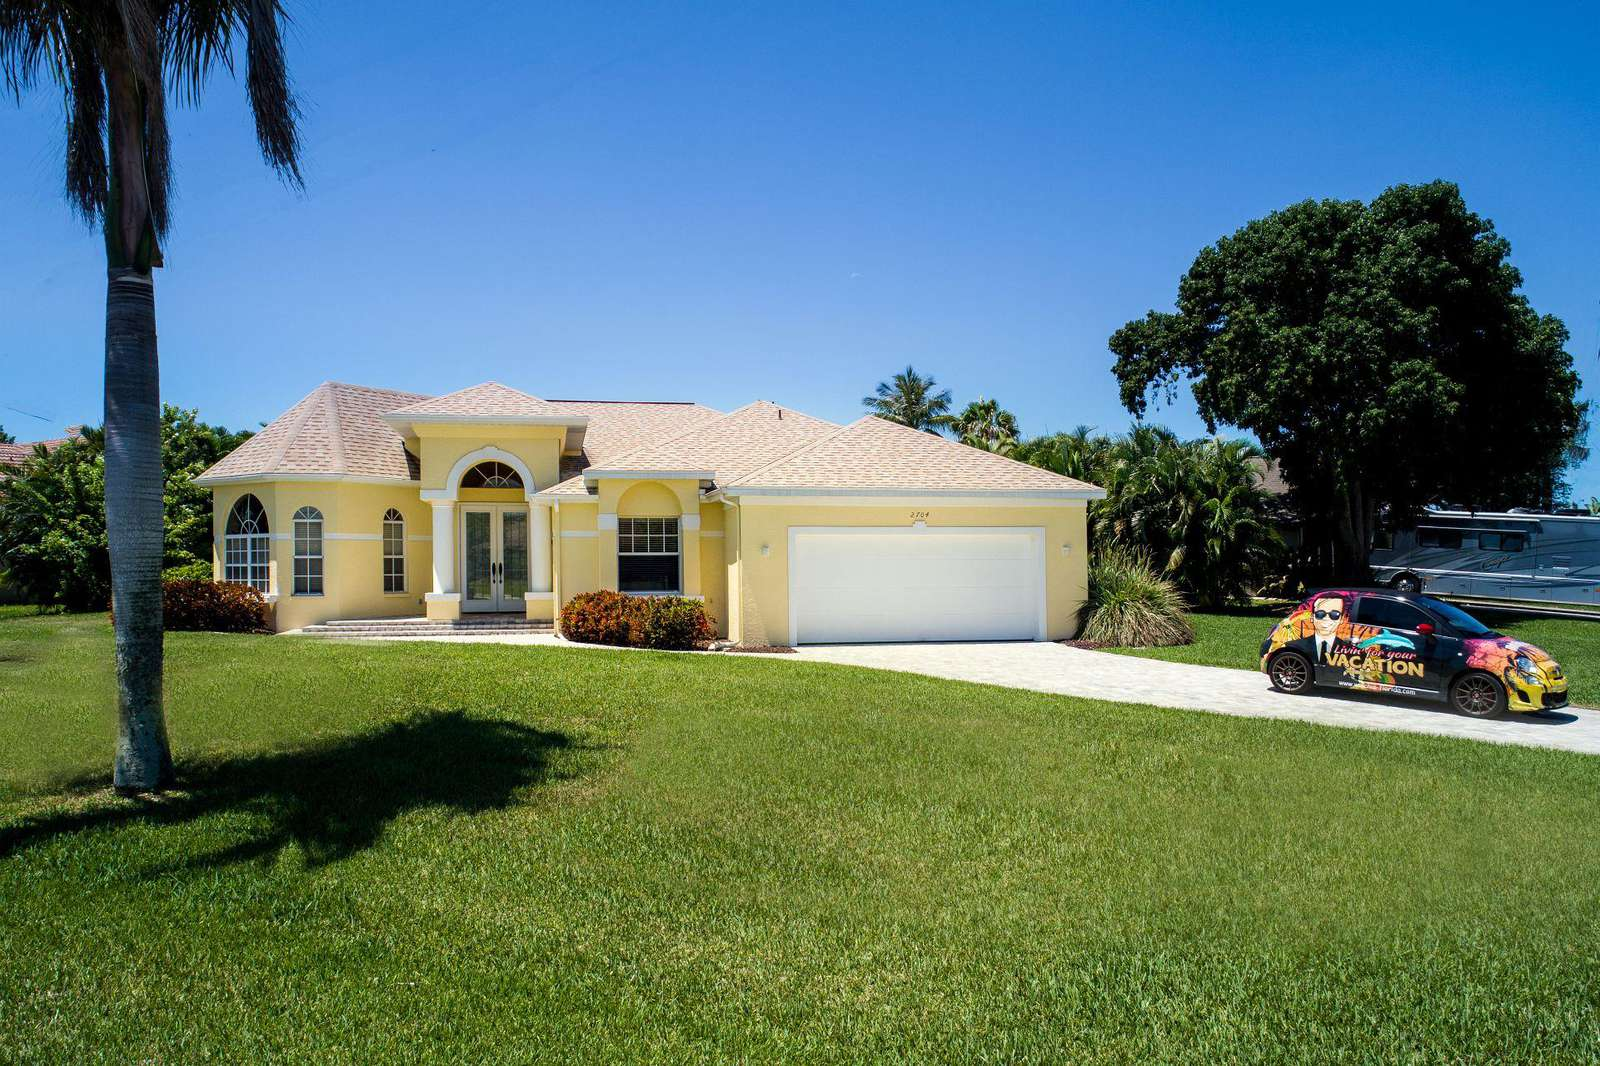 Wischis Florida Home - Treasure Island Vacation Rental - Property Management - Real Estate